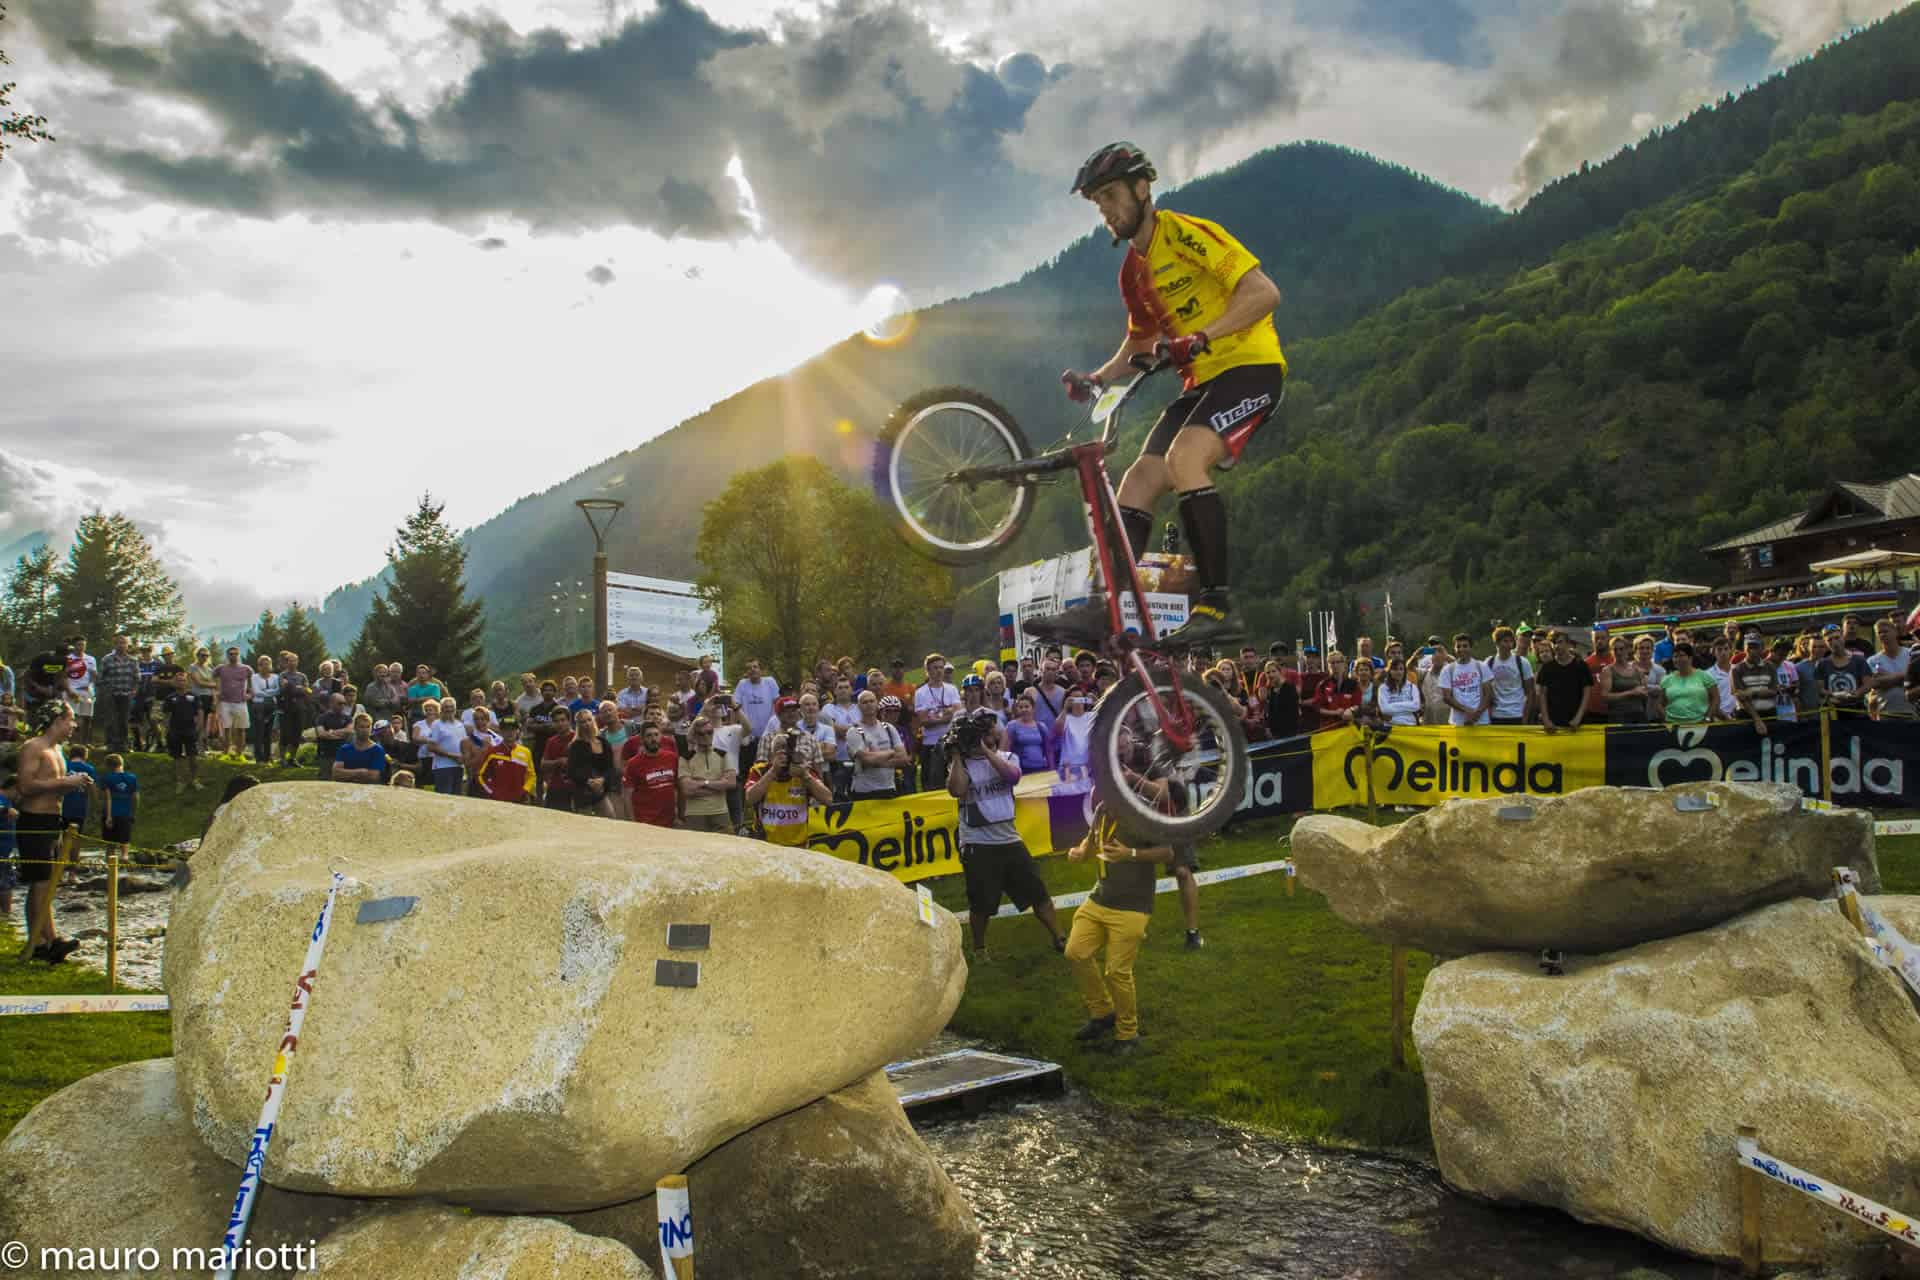 uci trials world cup 2019 by mauro mariotti